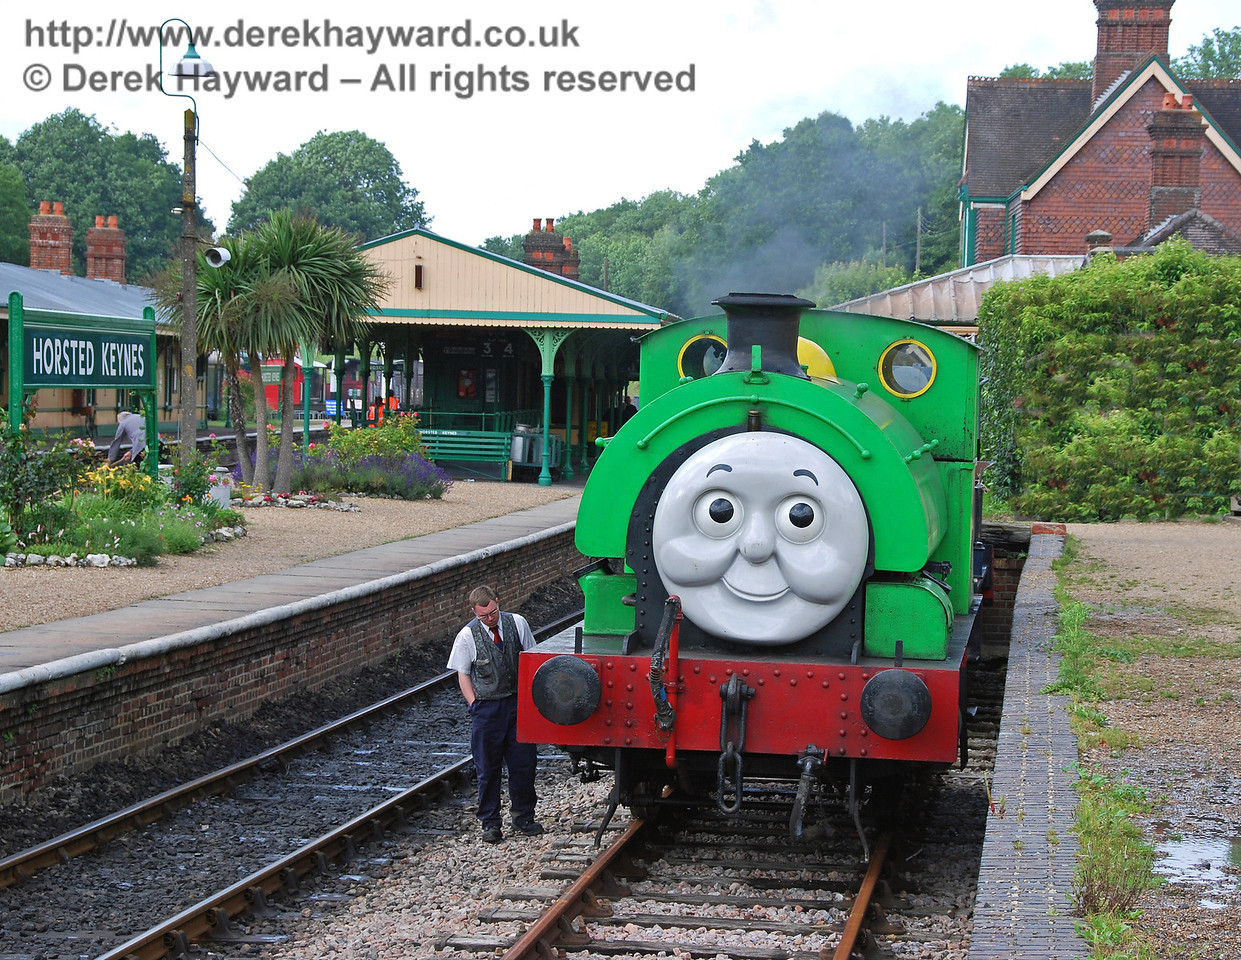 Percy has finished his shunting and one of his friends checks that everything is working right. Horsted Keynes 01.07.2007